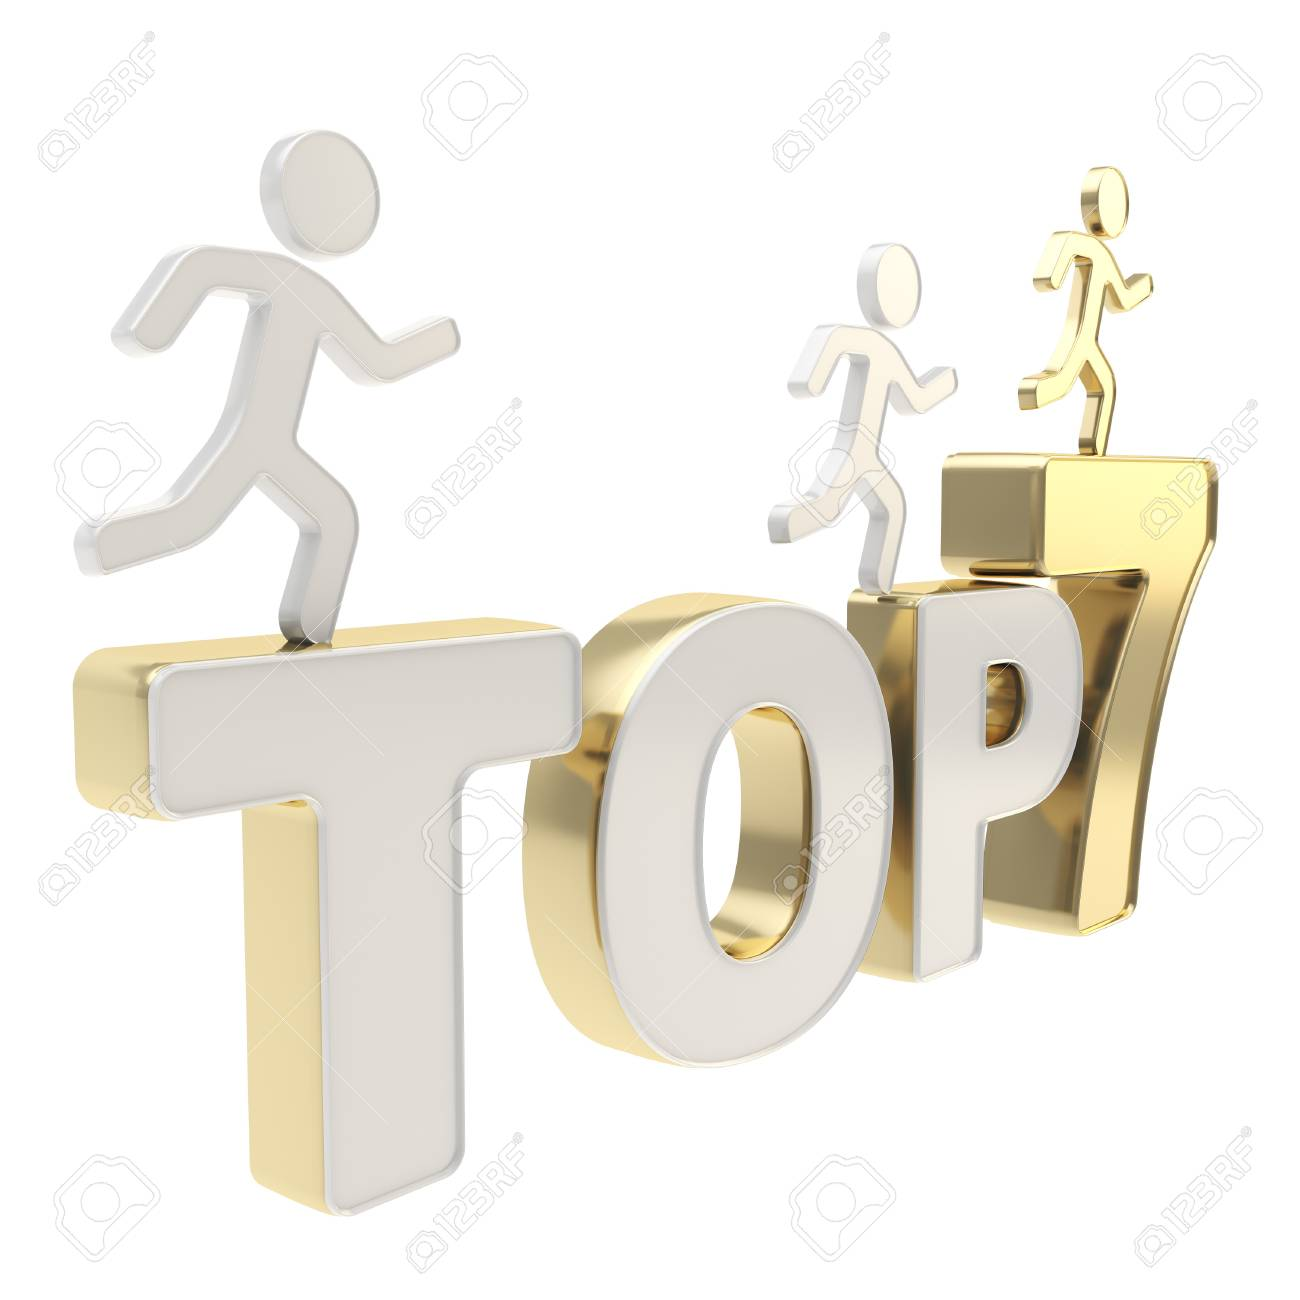 Top seven leaders illustration  group of human symbolic figures running over the golden chrome metal Top-7 composition isolated on white background Stock Photo - 17226463